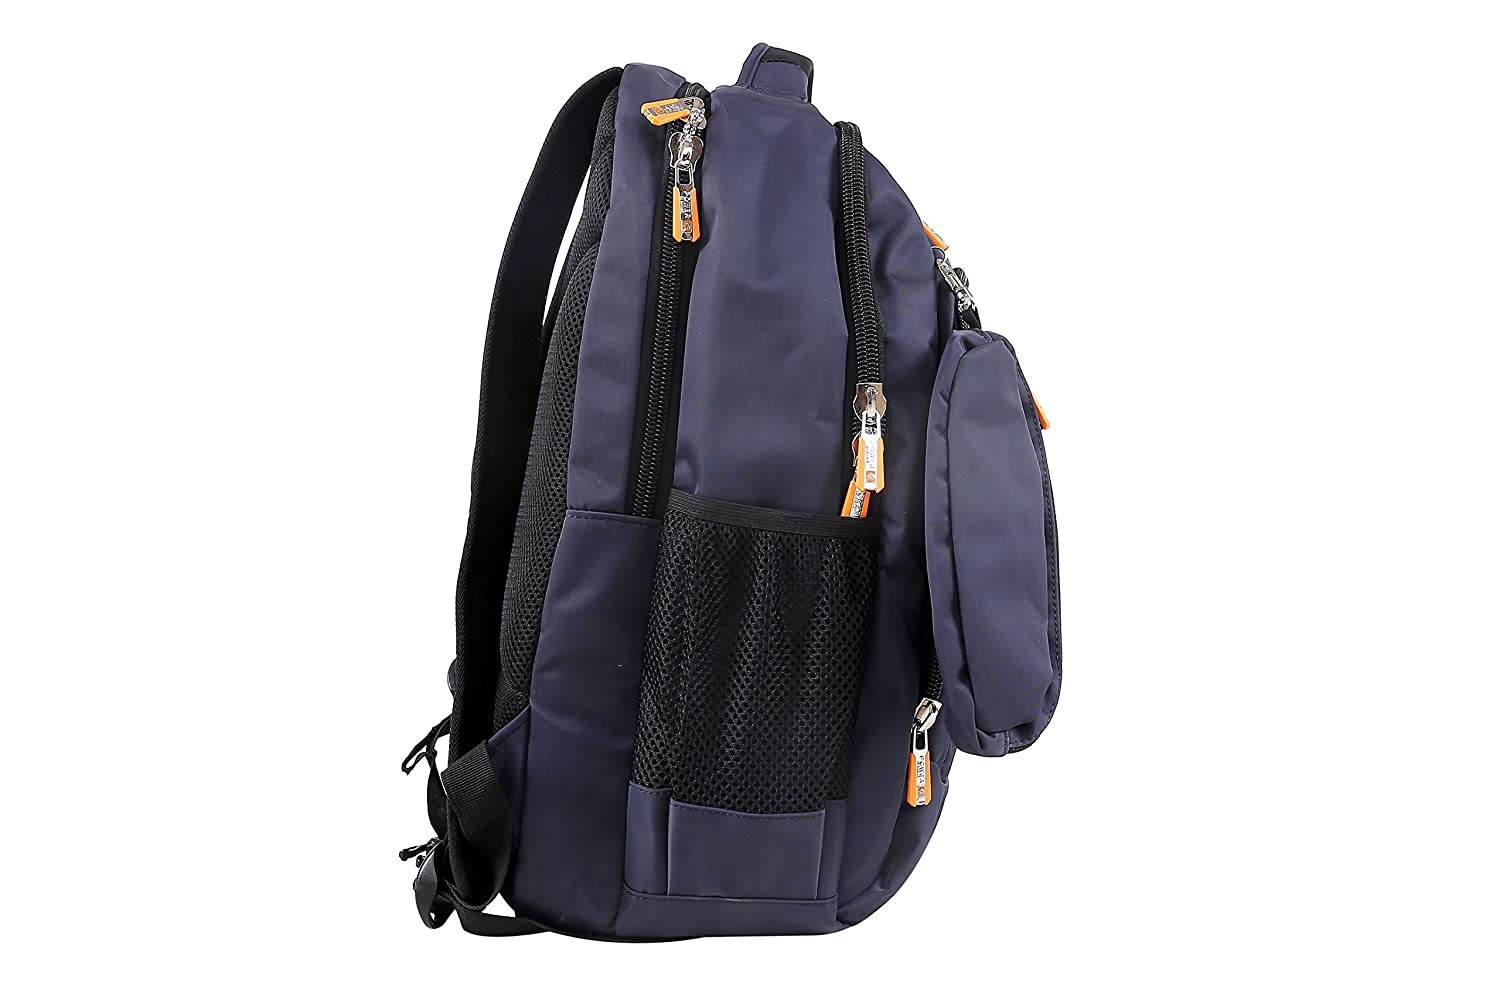 Amazon.com: Fashion Knockout Power In Eavas laptop backpack: Computers & Accessories